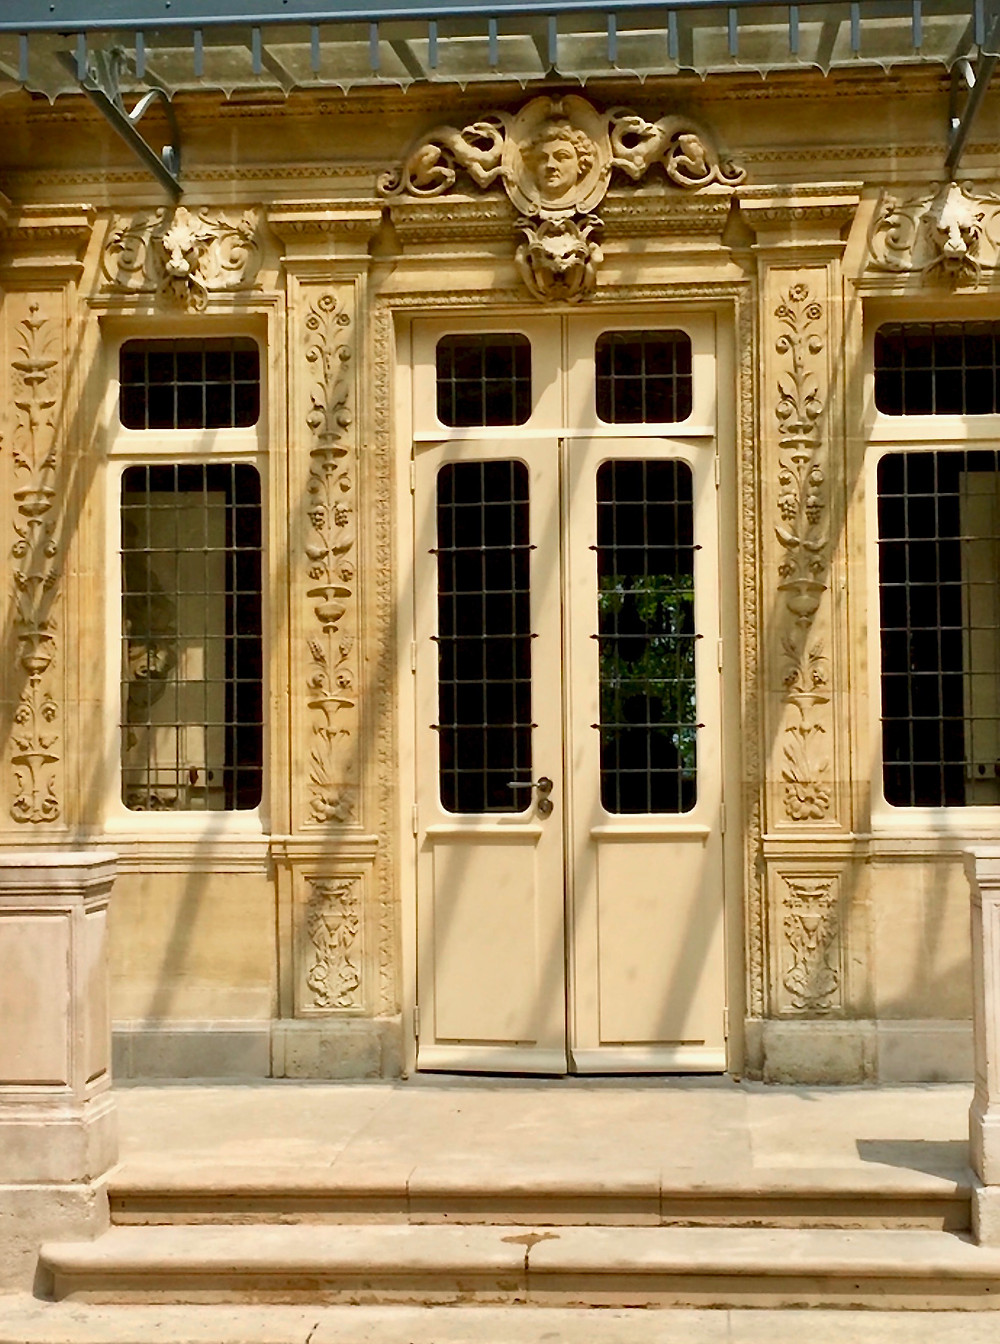 intricately carved details, including a bust of Dumas, on the Chateau de Monte Cristo